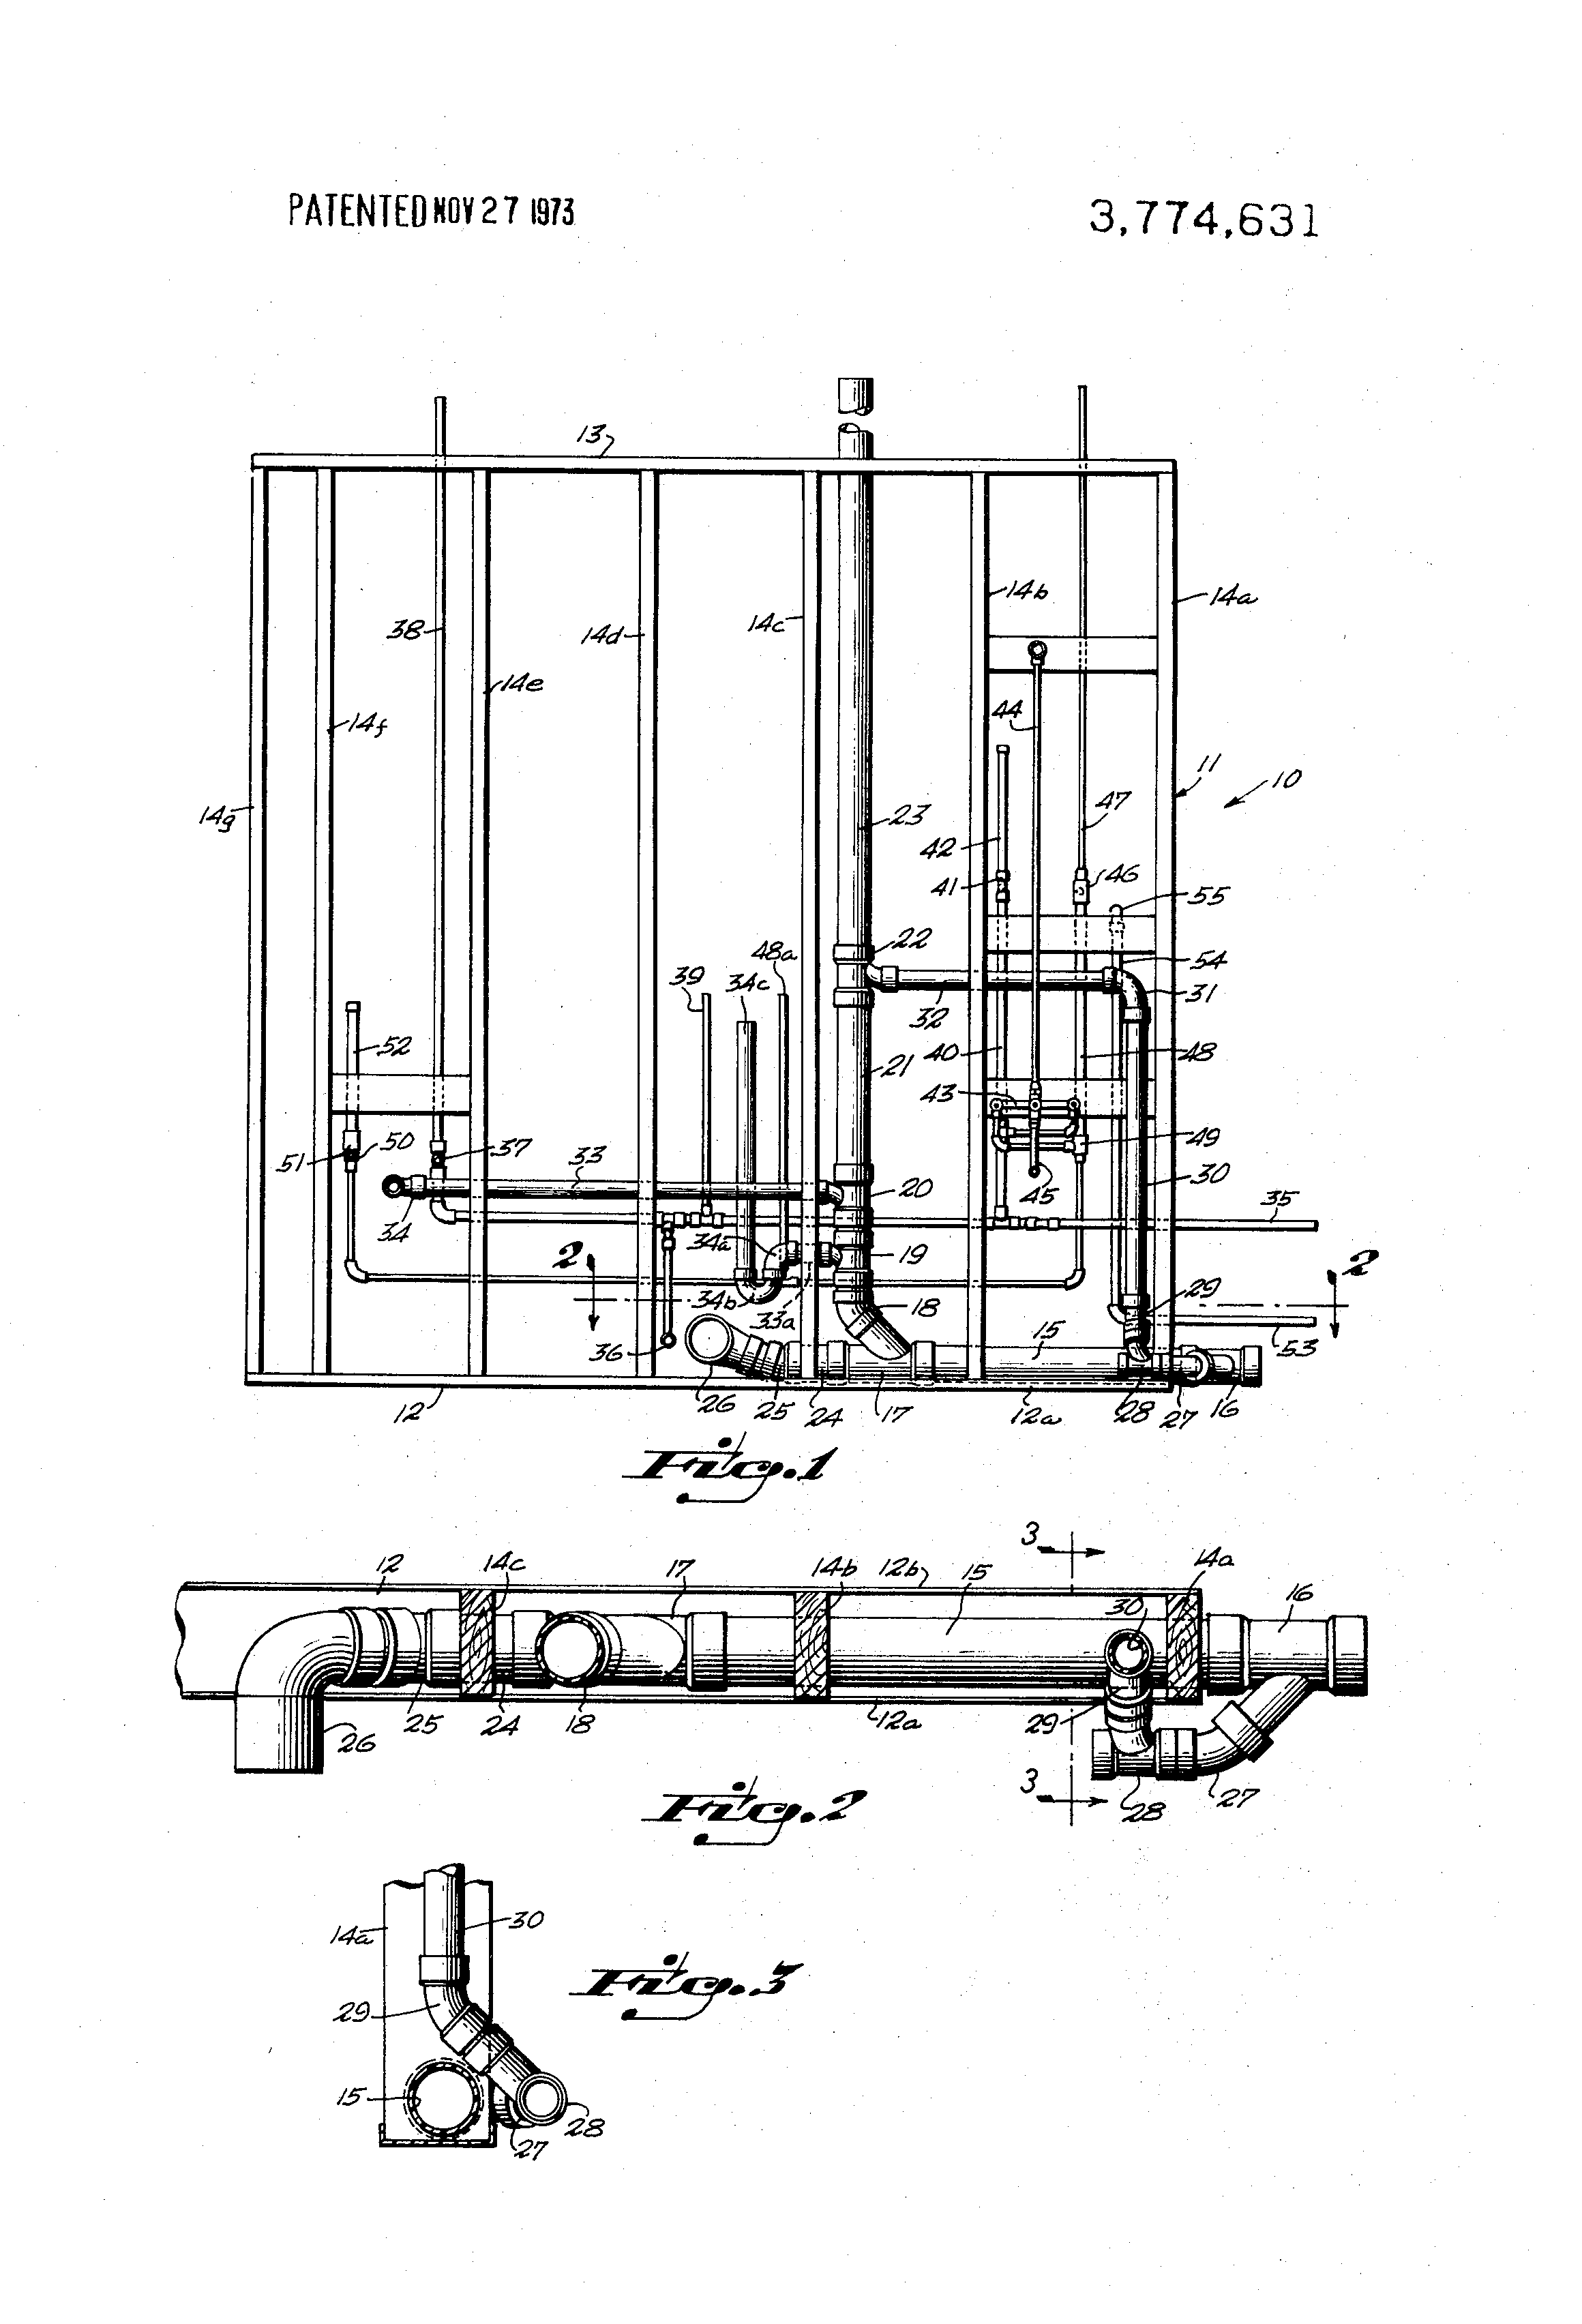 Patent US Prefabricated modular rough plumbing Google